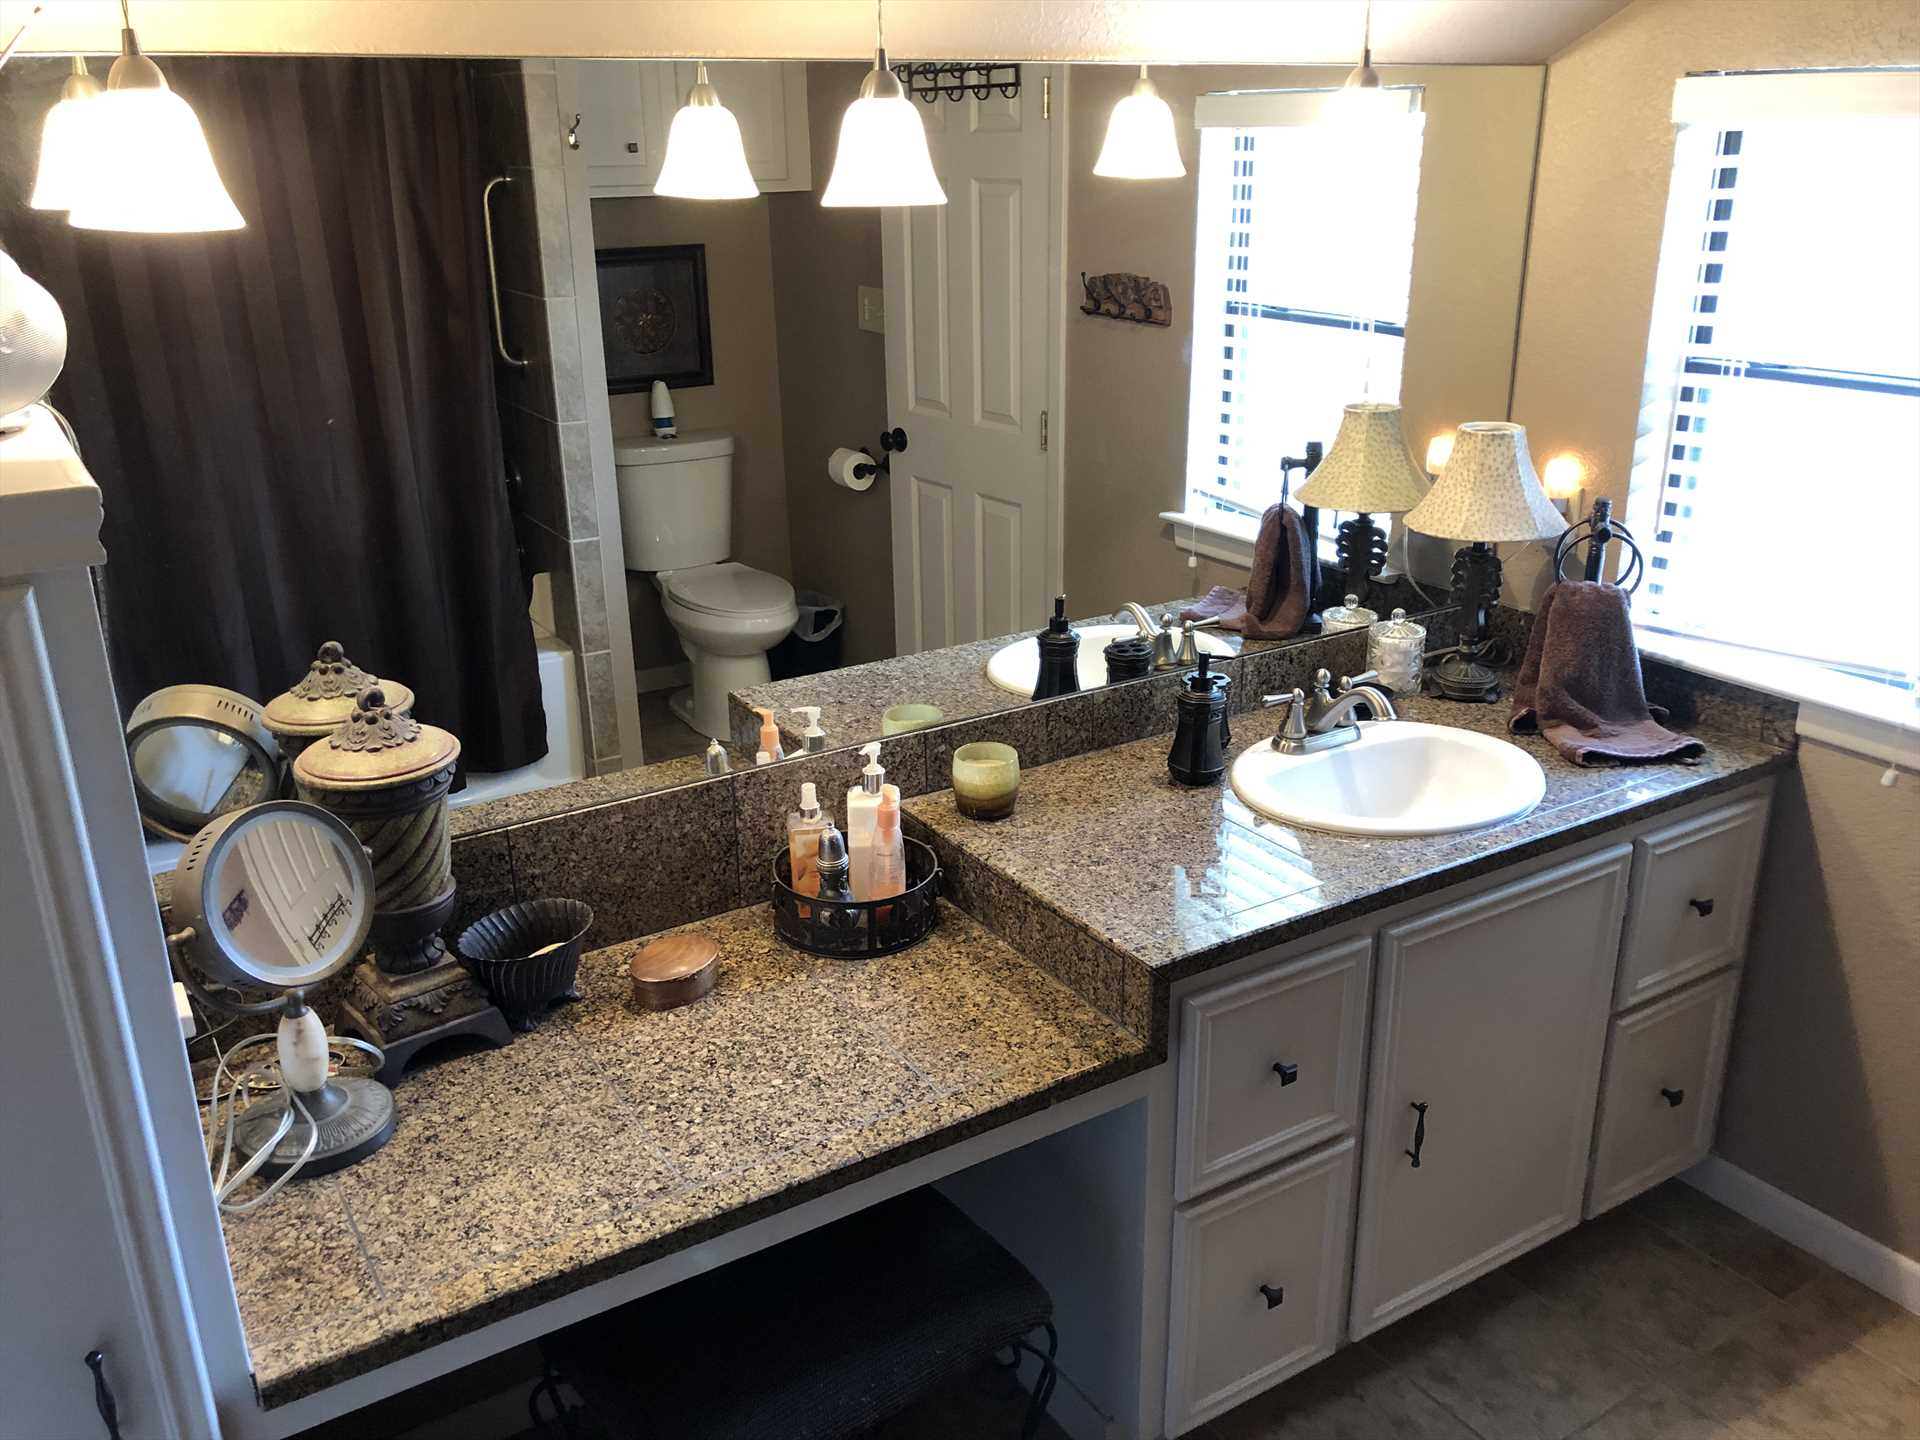 The master bath includes a roomy mirrored vanity and tub and shower combo. Clean bath linens are provided for guests throughout the house, too.